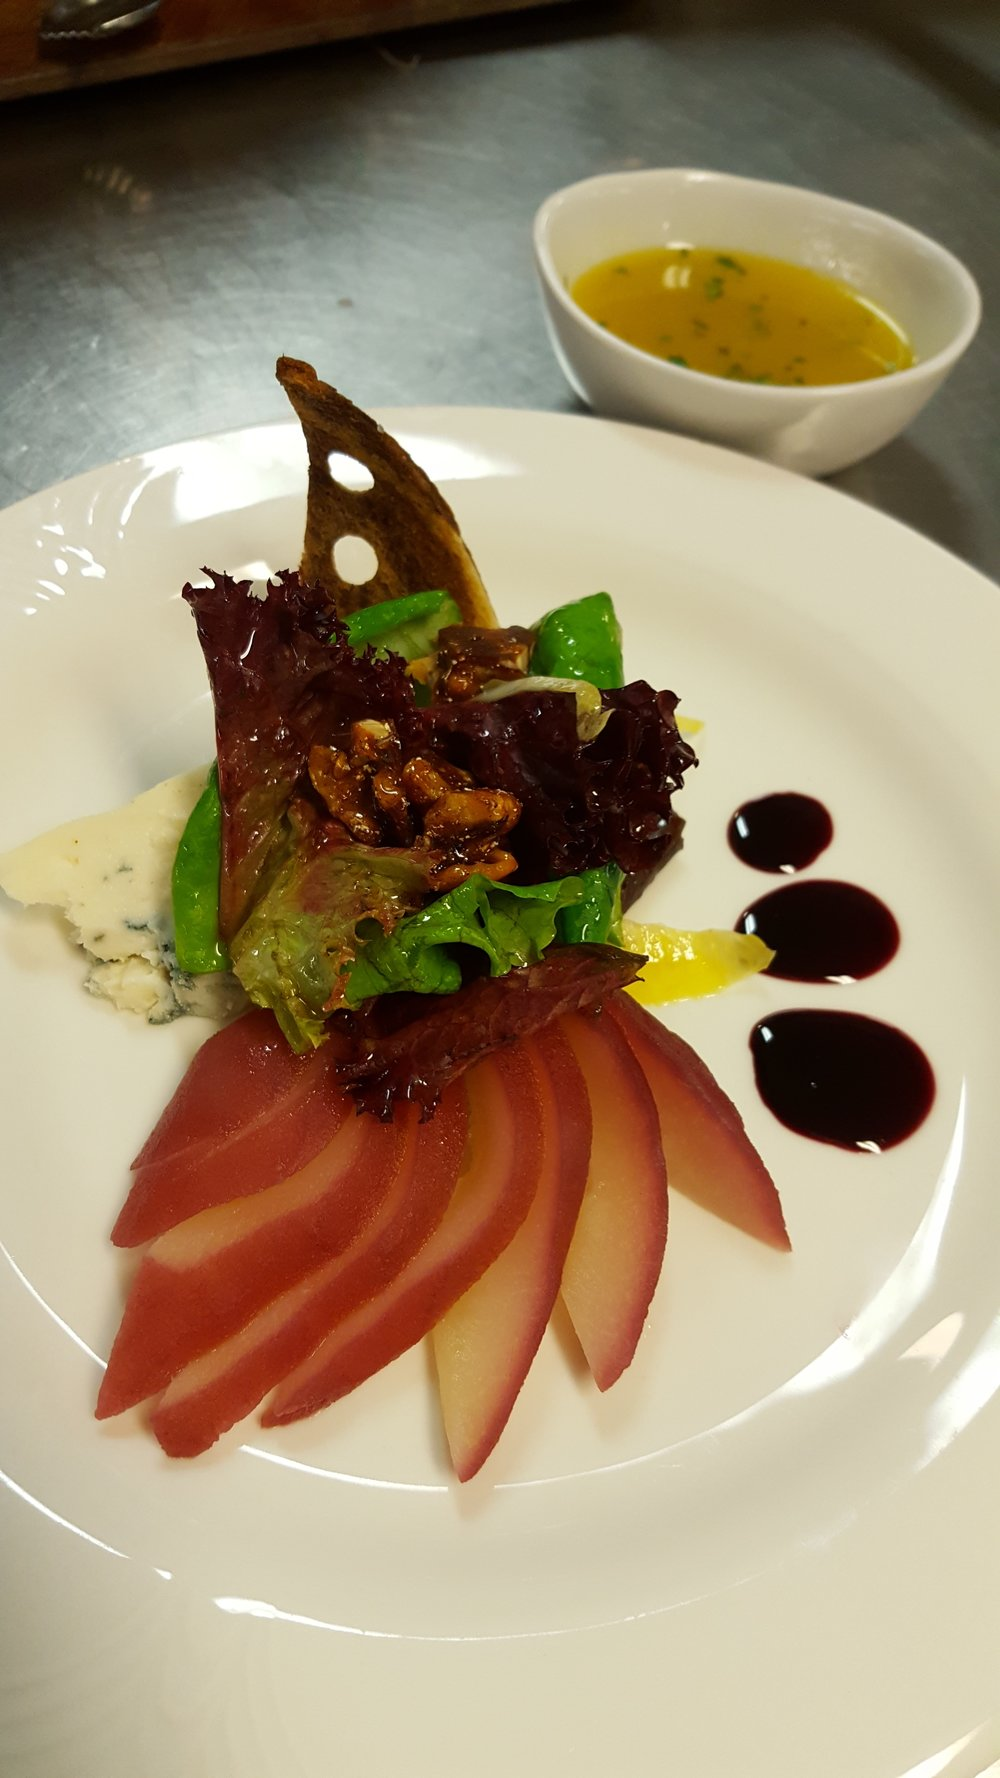 Salad: Port Wine Poached Pear, Tossed Field Greens. Served with Danish Blue Cheese, Praline Pecans, and Balsamic Vinaigrette